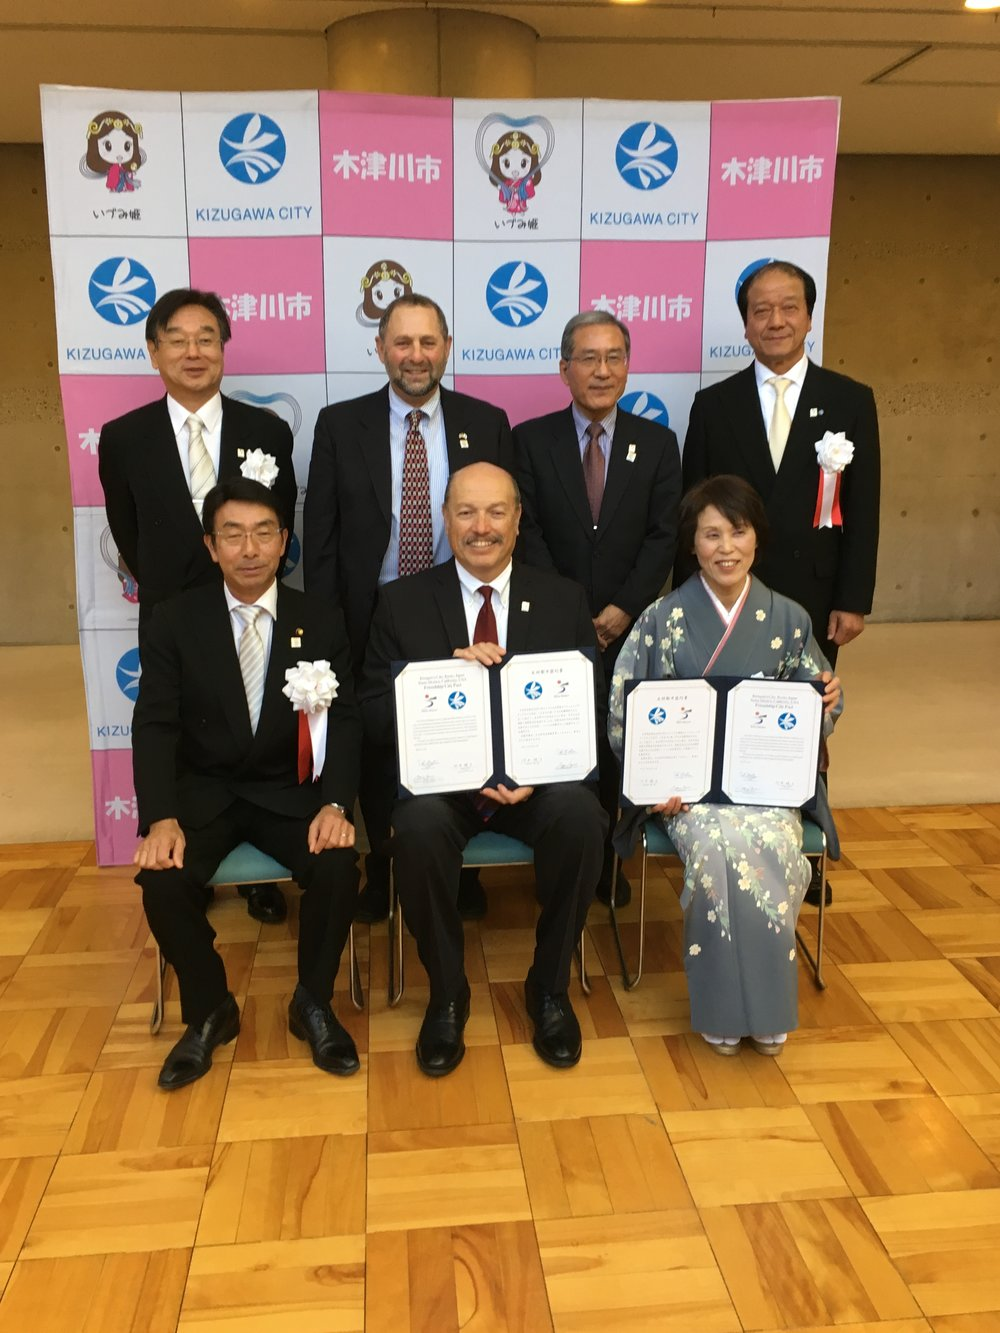 Tony attending the celebration of Santa Monica's sister city Kizugawa, Japan.